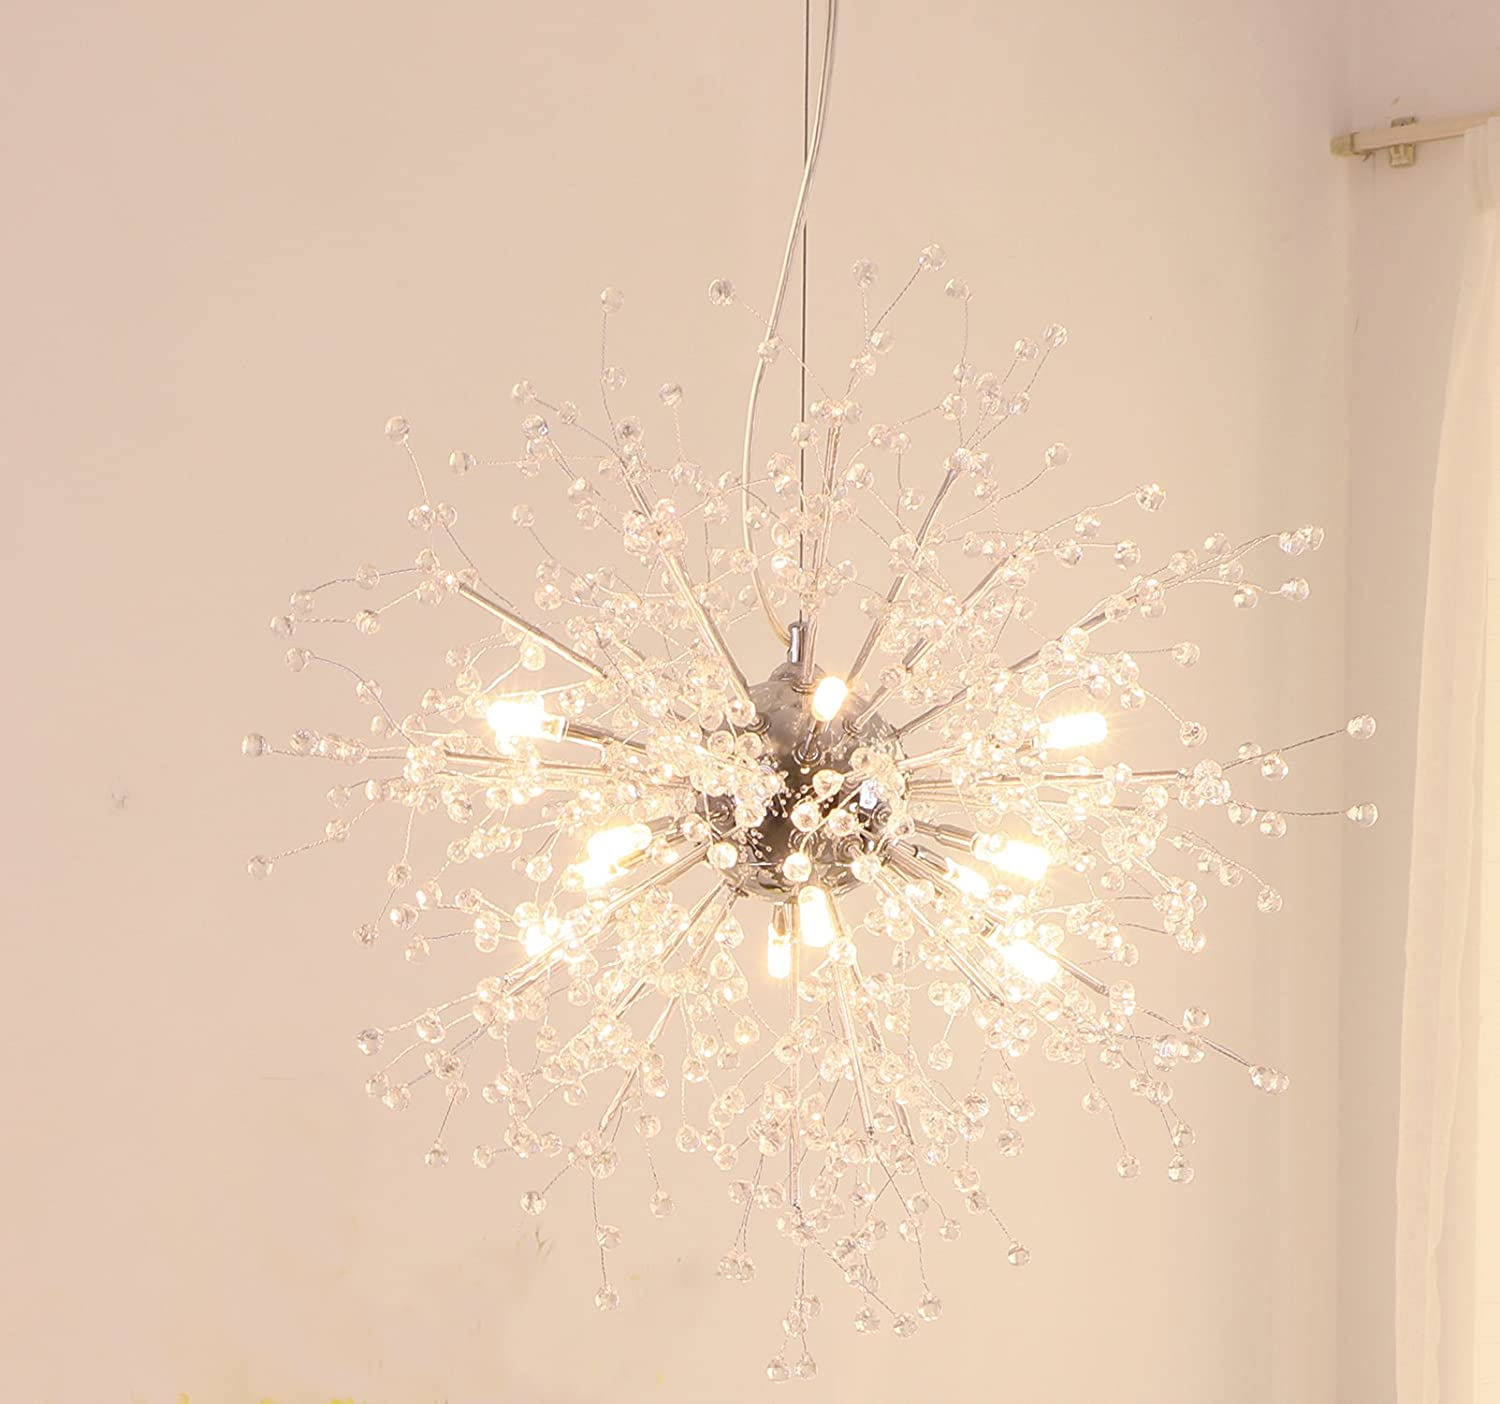 GDNS Chandeliers Firework LED Light Stainless Steel Crystal Pendant Lighting Ceiling Light Fixtures Chandeliers Lighting, Dia 23.5 inch - -